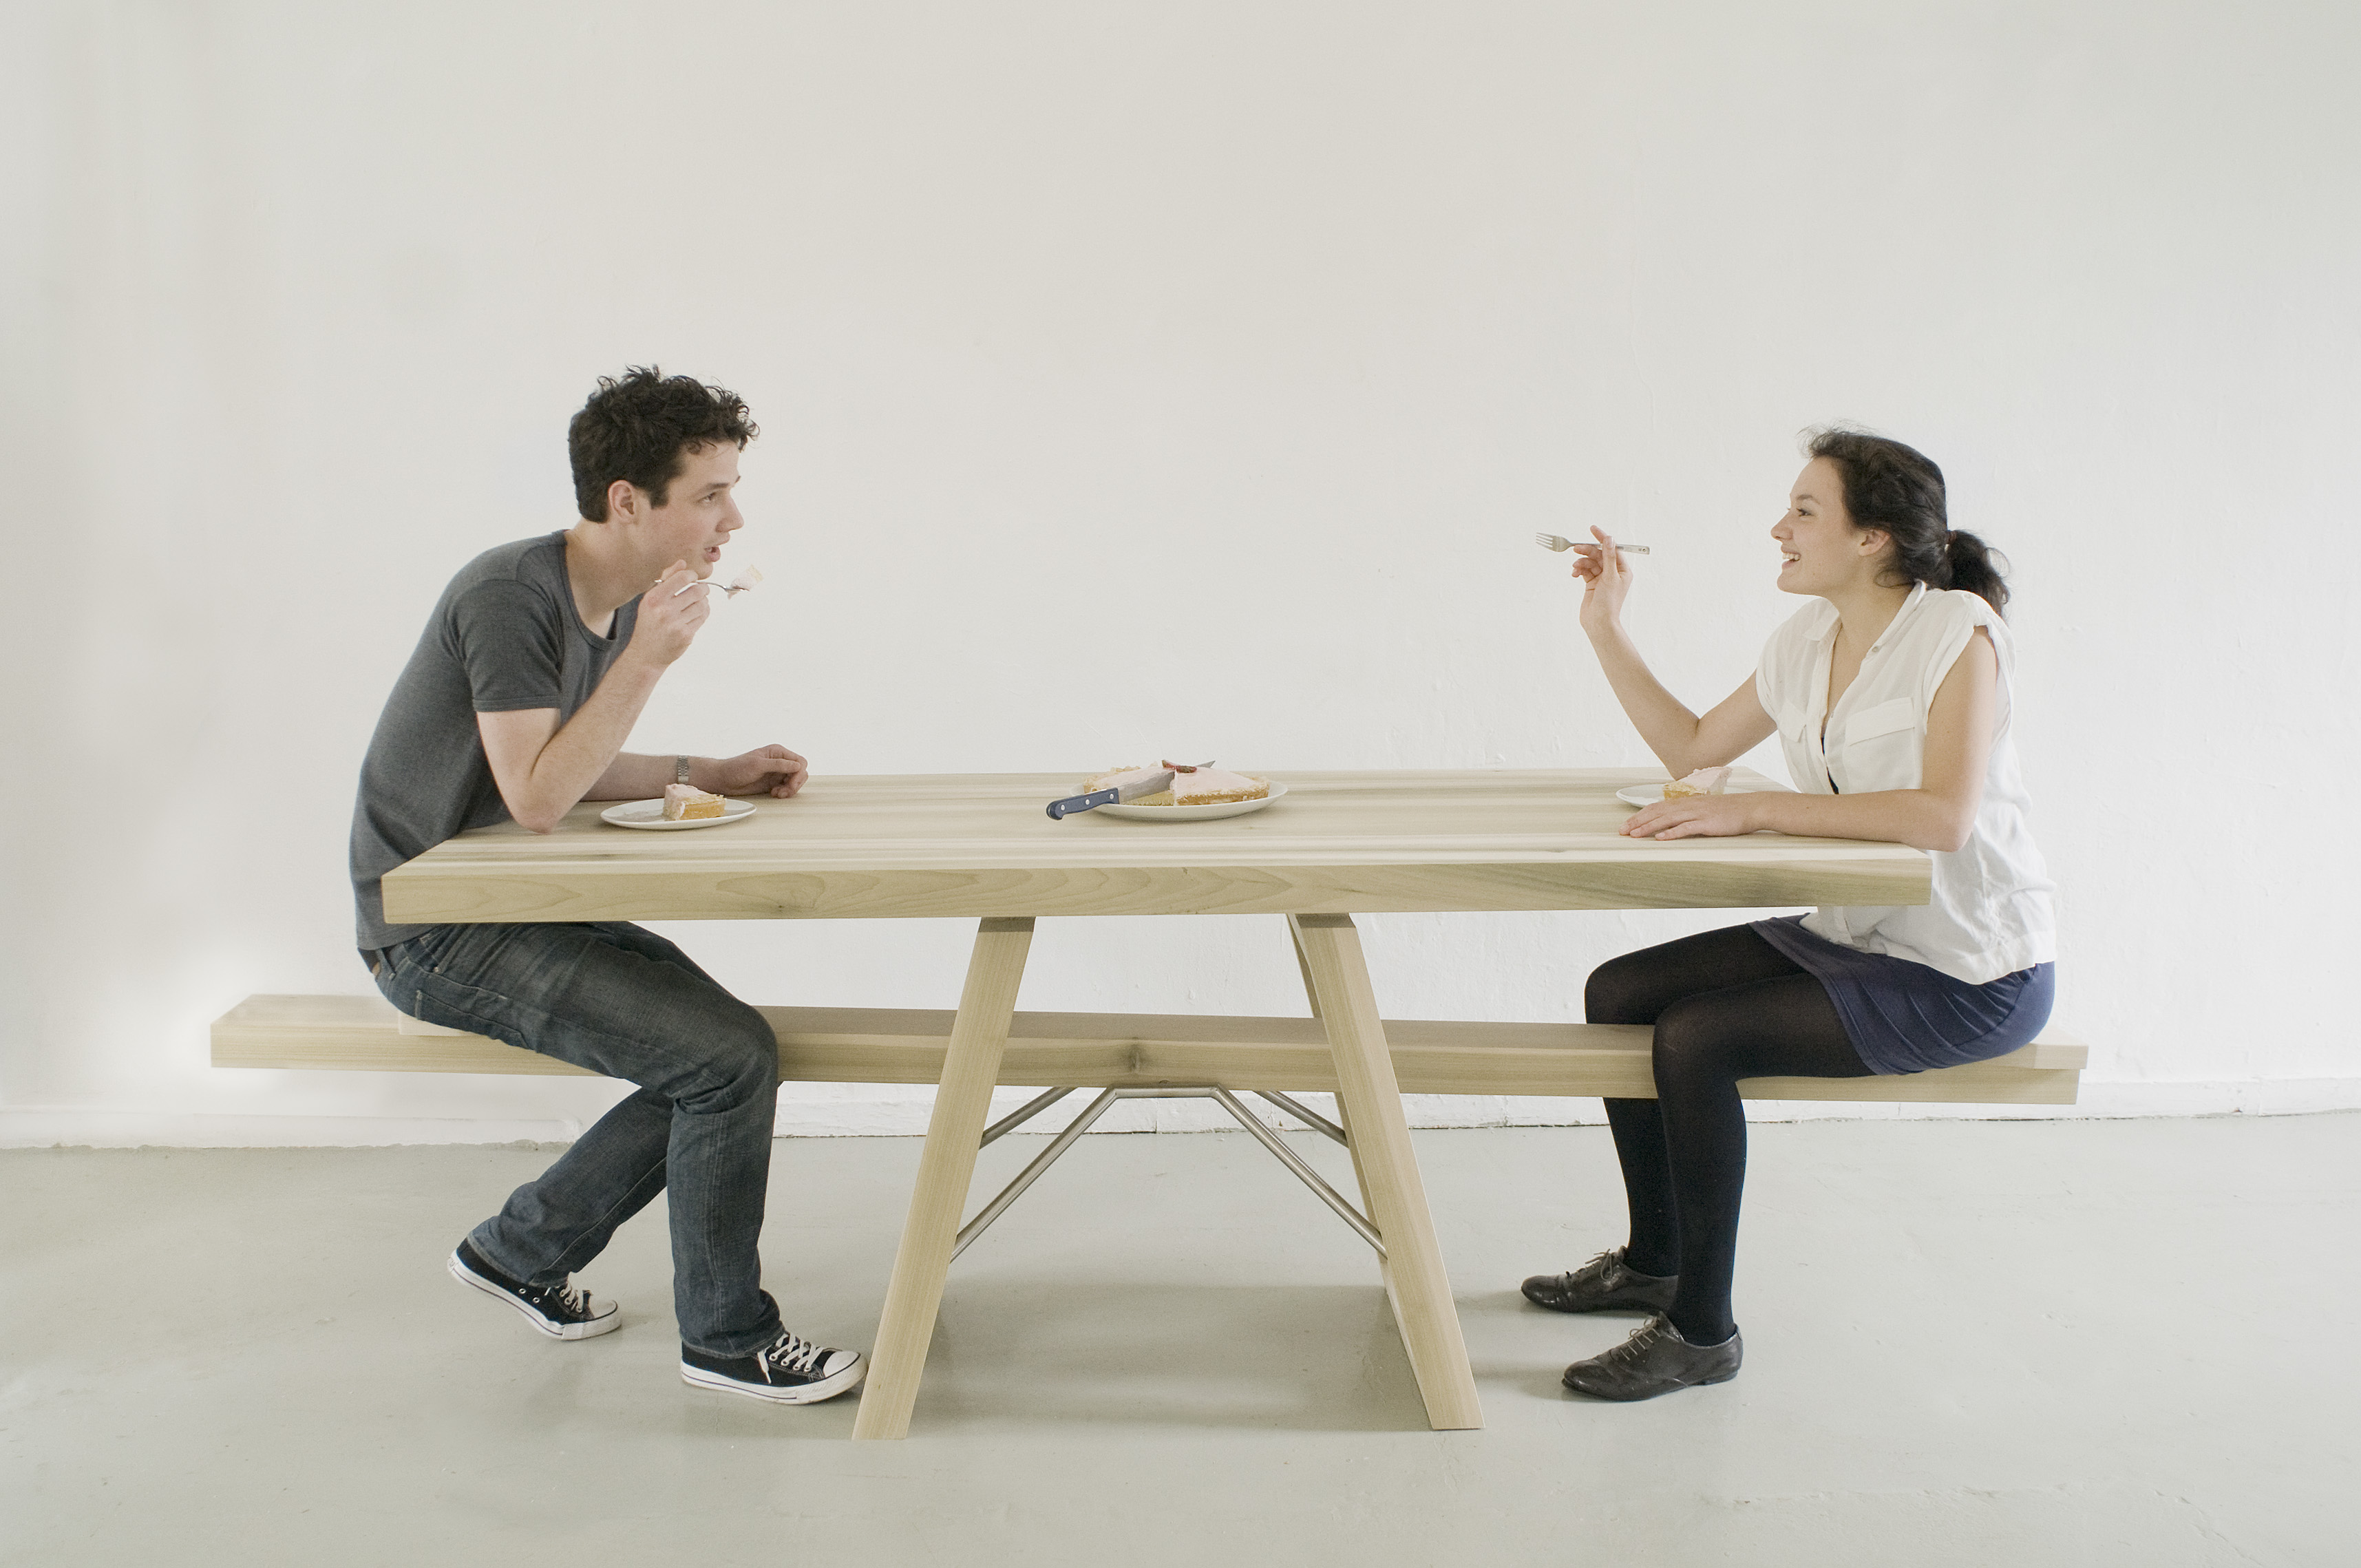 Courtesytable A Wooden Picnic Style Table With Novel